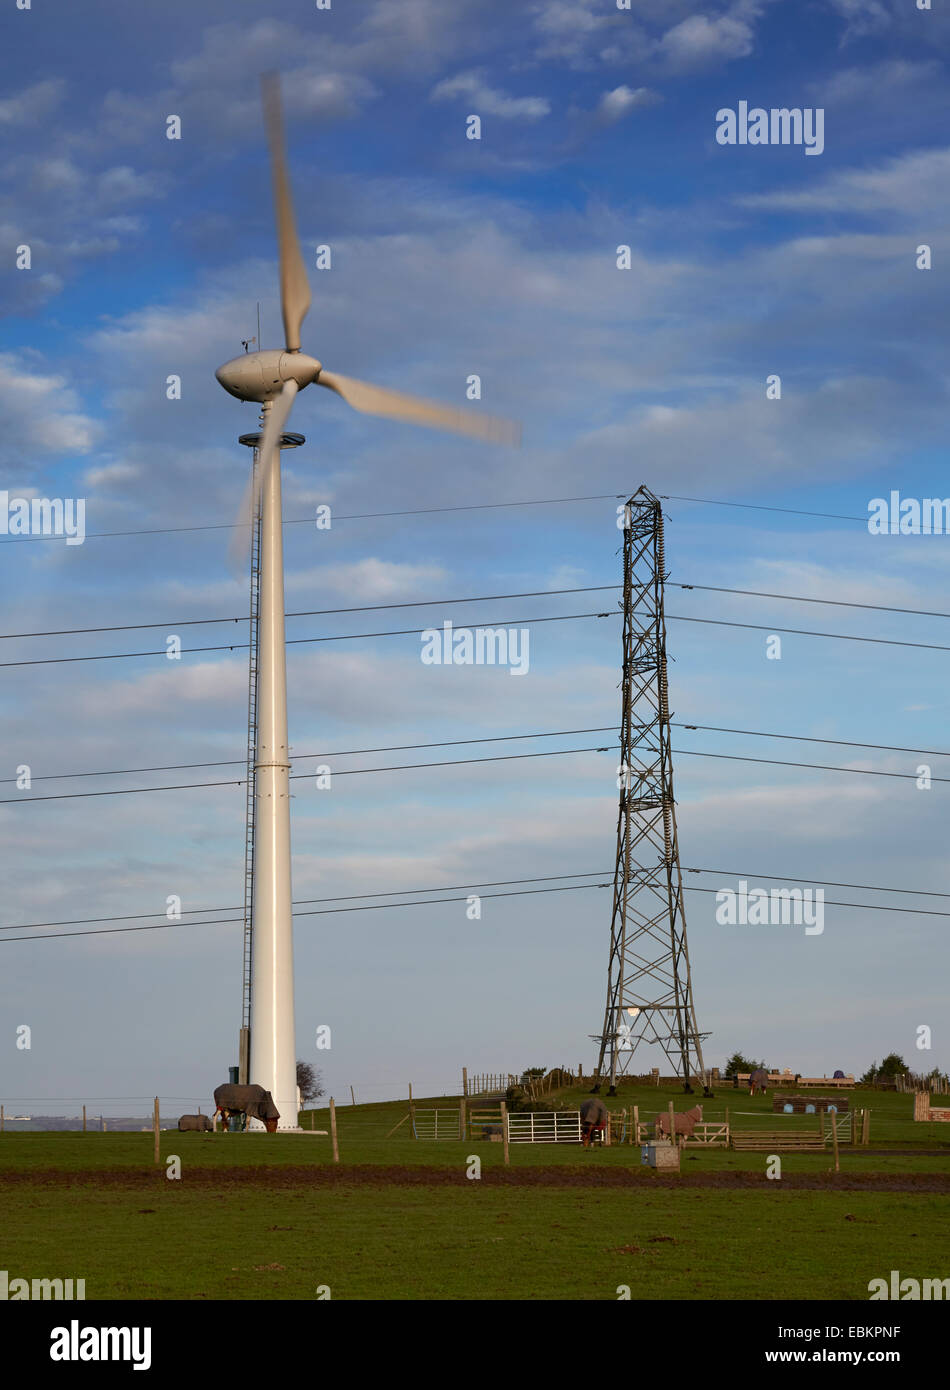 Wind turbine and electricity pylon in rural location. - Stock Image